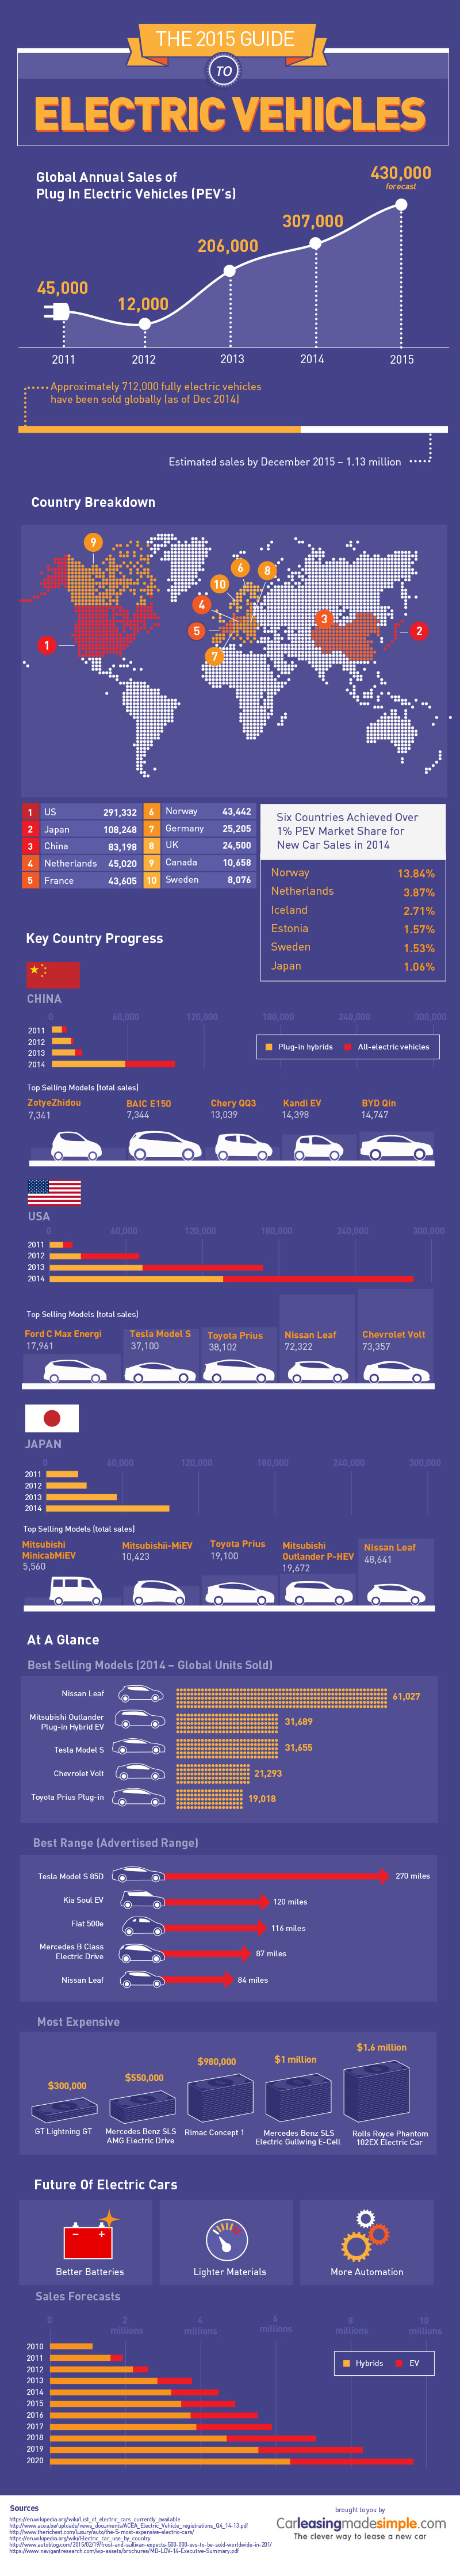 electric-cars-infographic-2014-2015.jpg